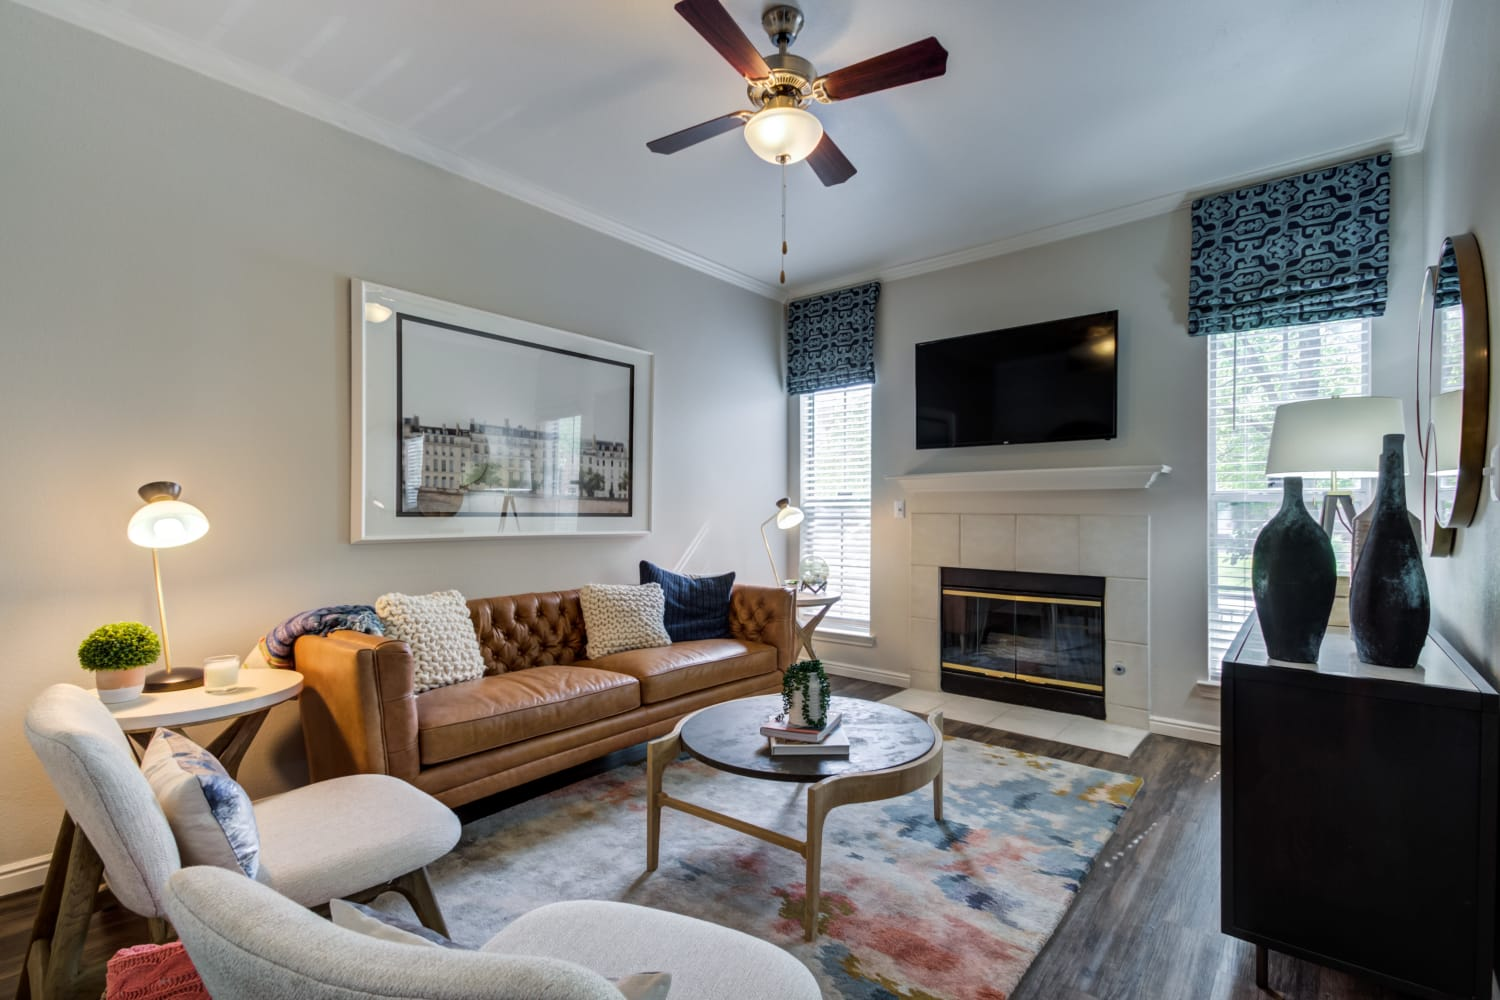 Beautifully decorated living fireplace and ceiling fan at Irving Schoolhouse Apartments in Salt Lake City, Utah